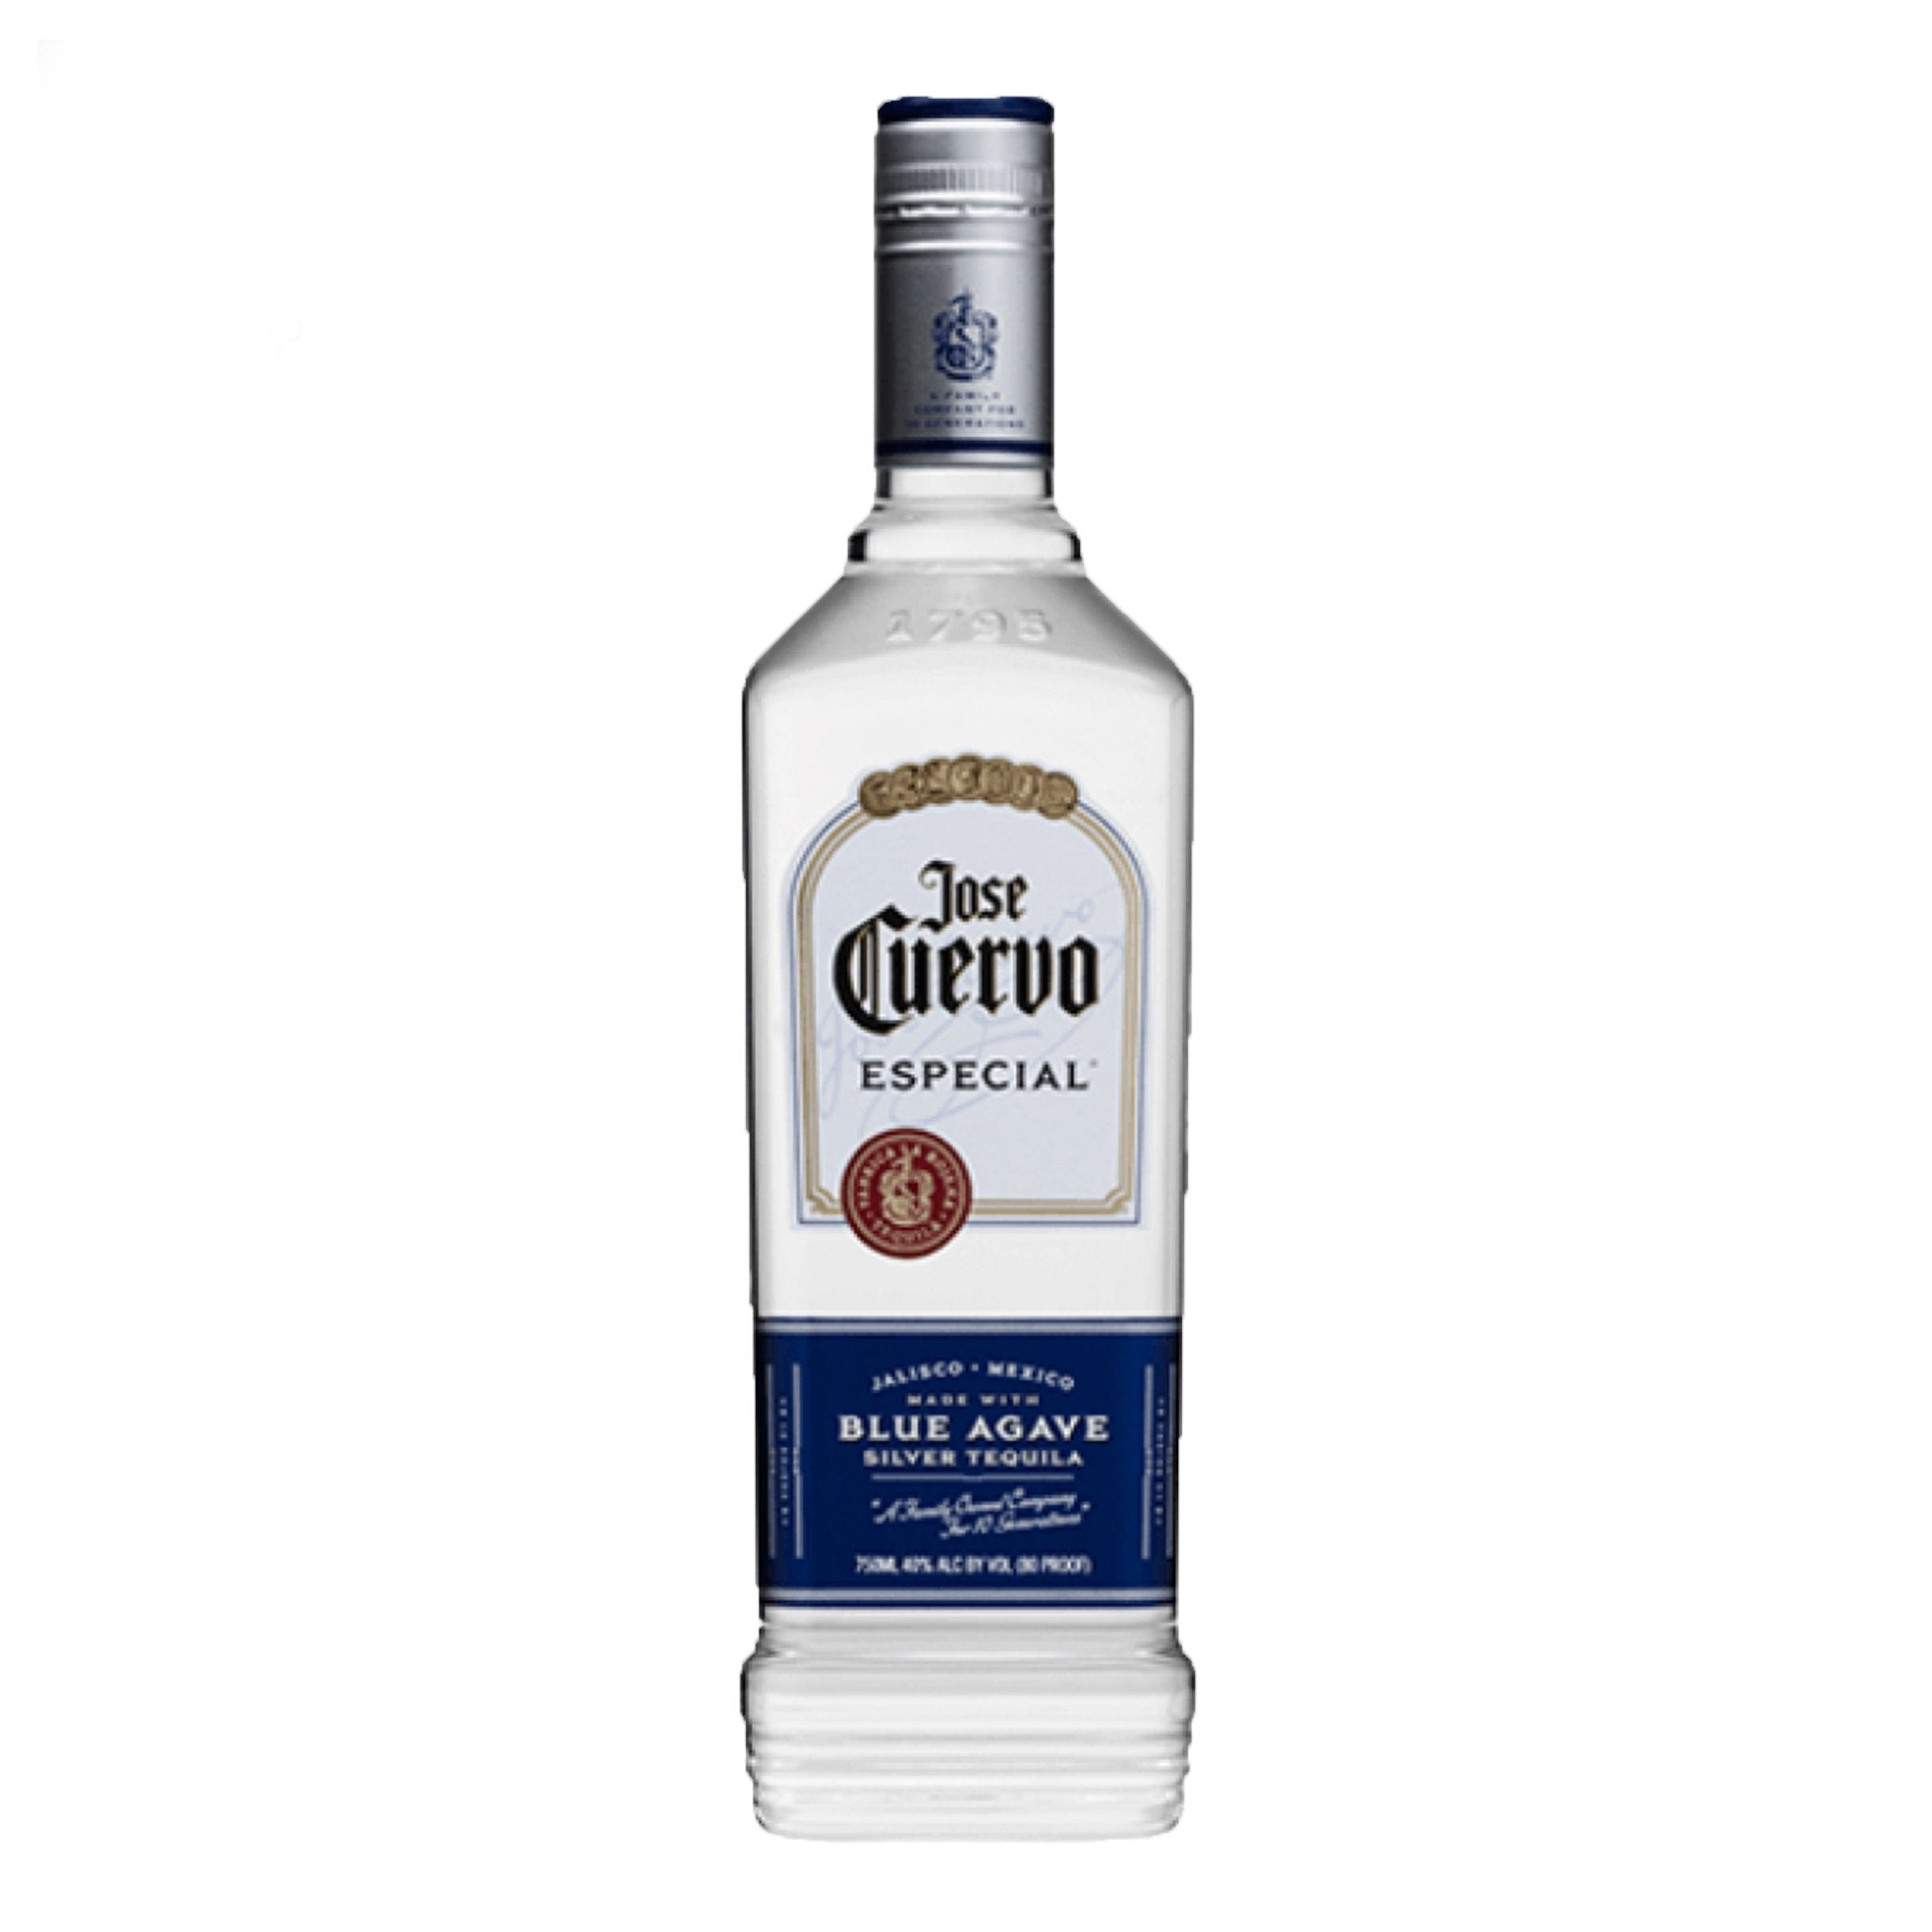 Jose Cuervo Especial Silver Tequila 70cl, Tequila - Image 0